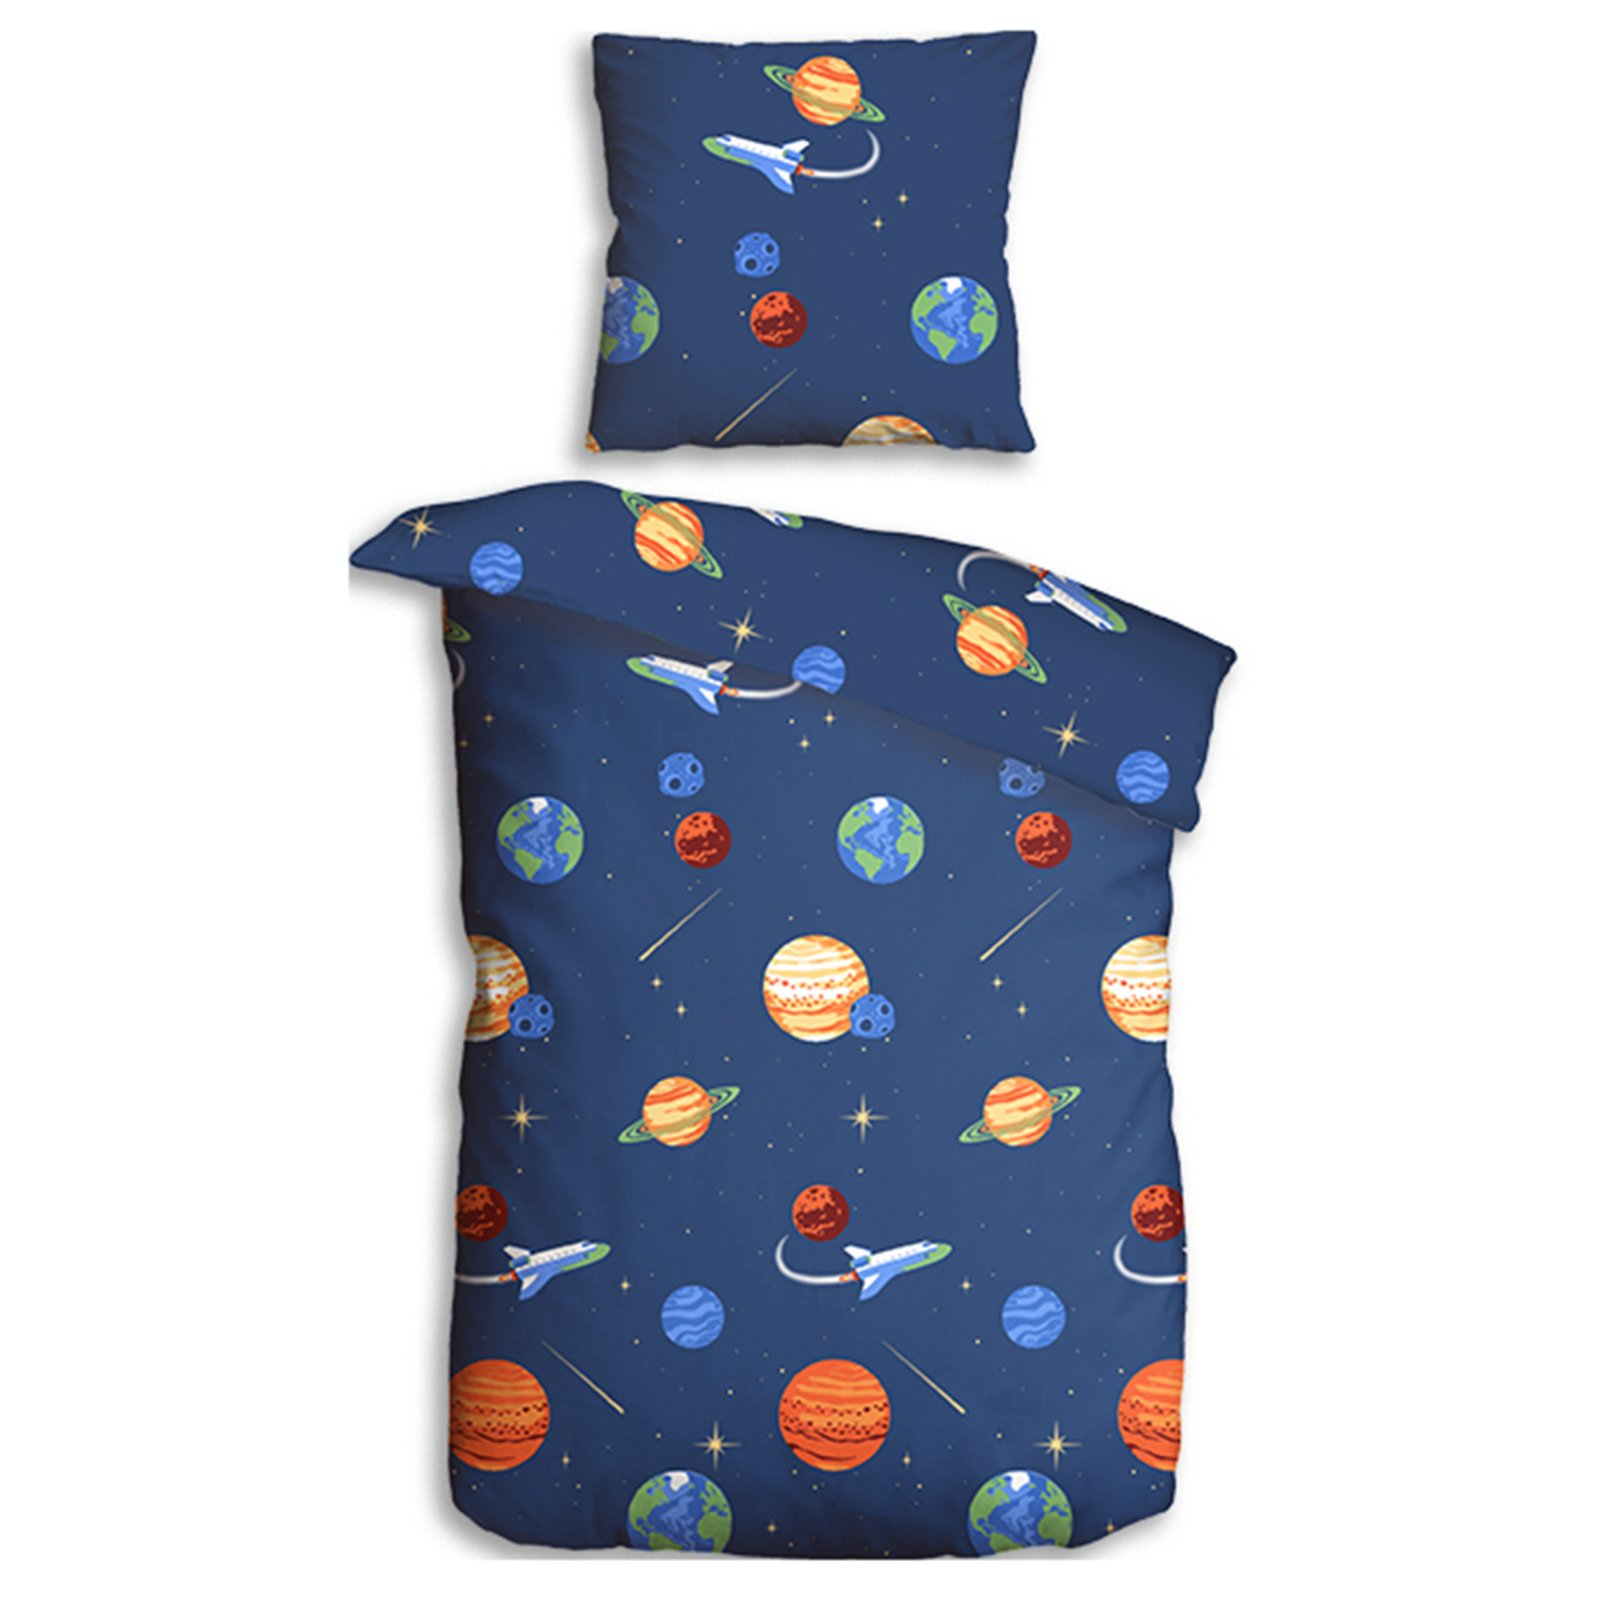 microfaser bettw sche universum blau 135x200 cm kinderbettw sche bettw sche. Black Bedroom Furniture Sets. Home Design Ideas